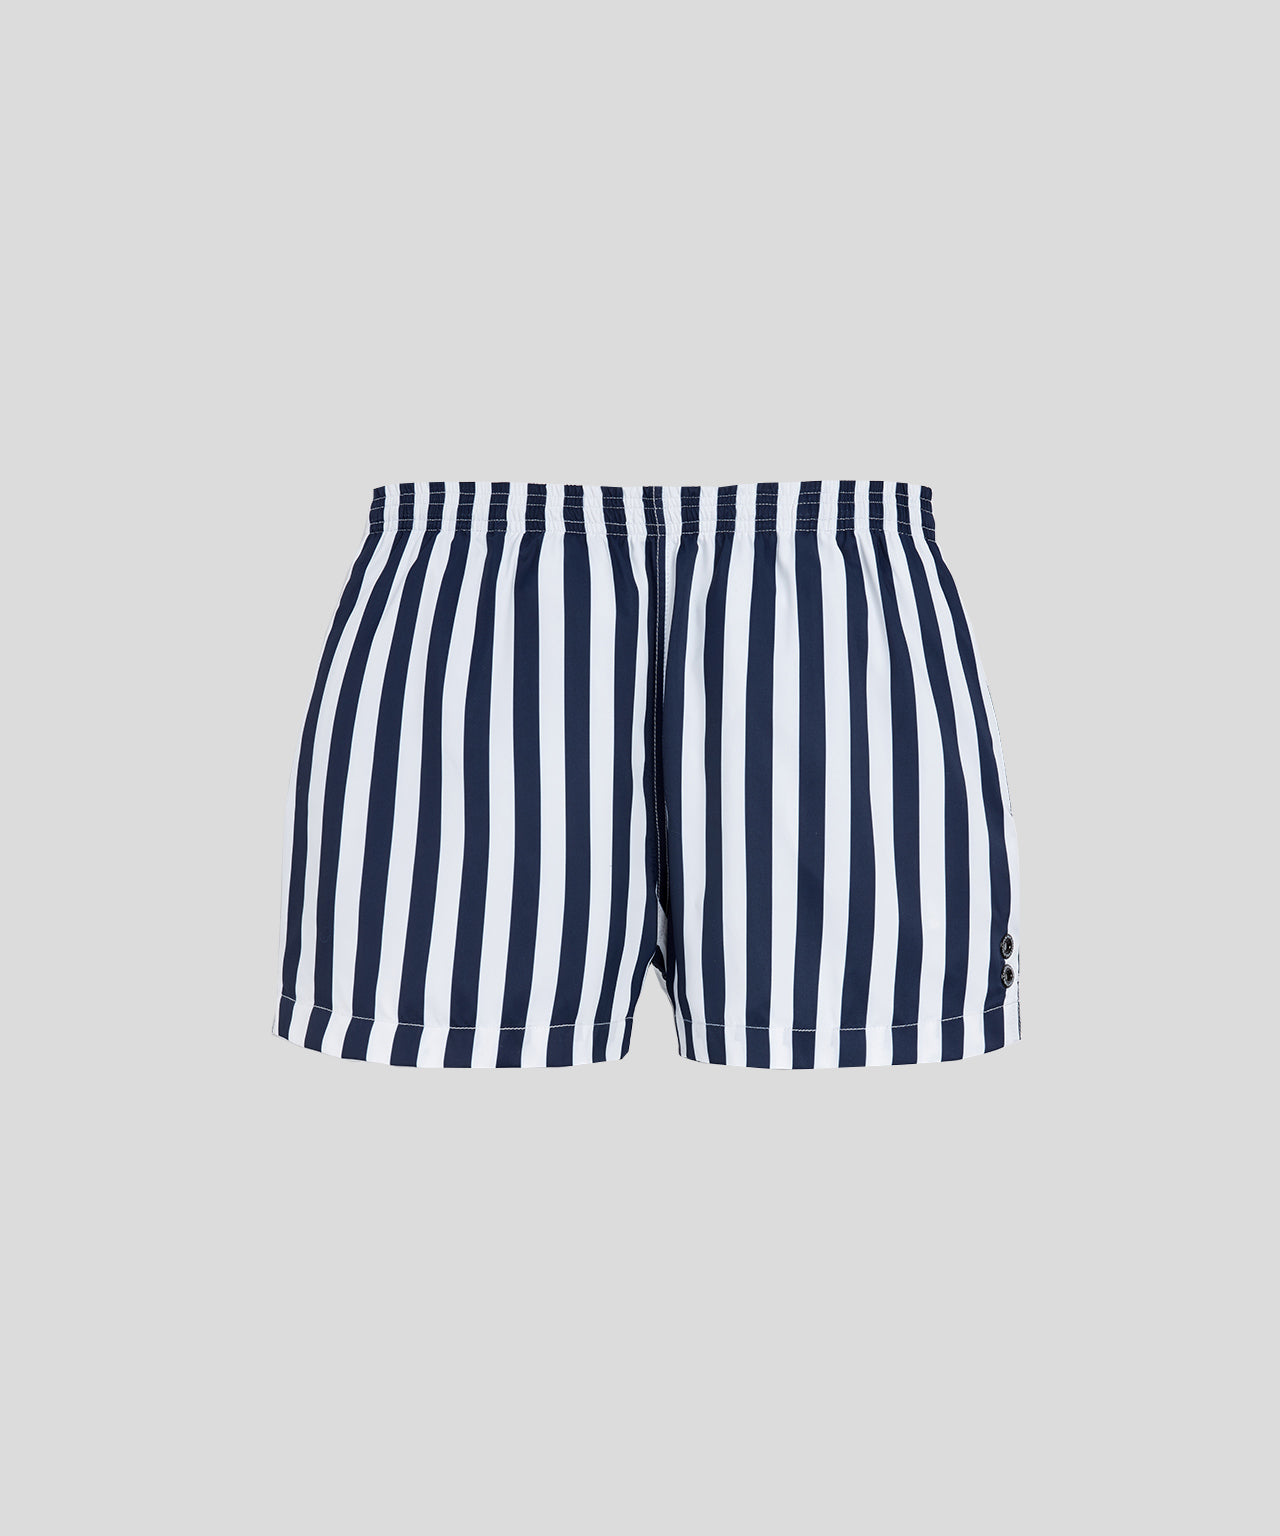 Swim Shorts Vertical Stripes - navy/white